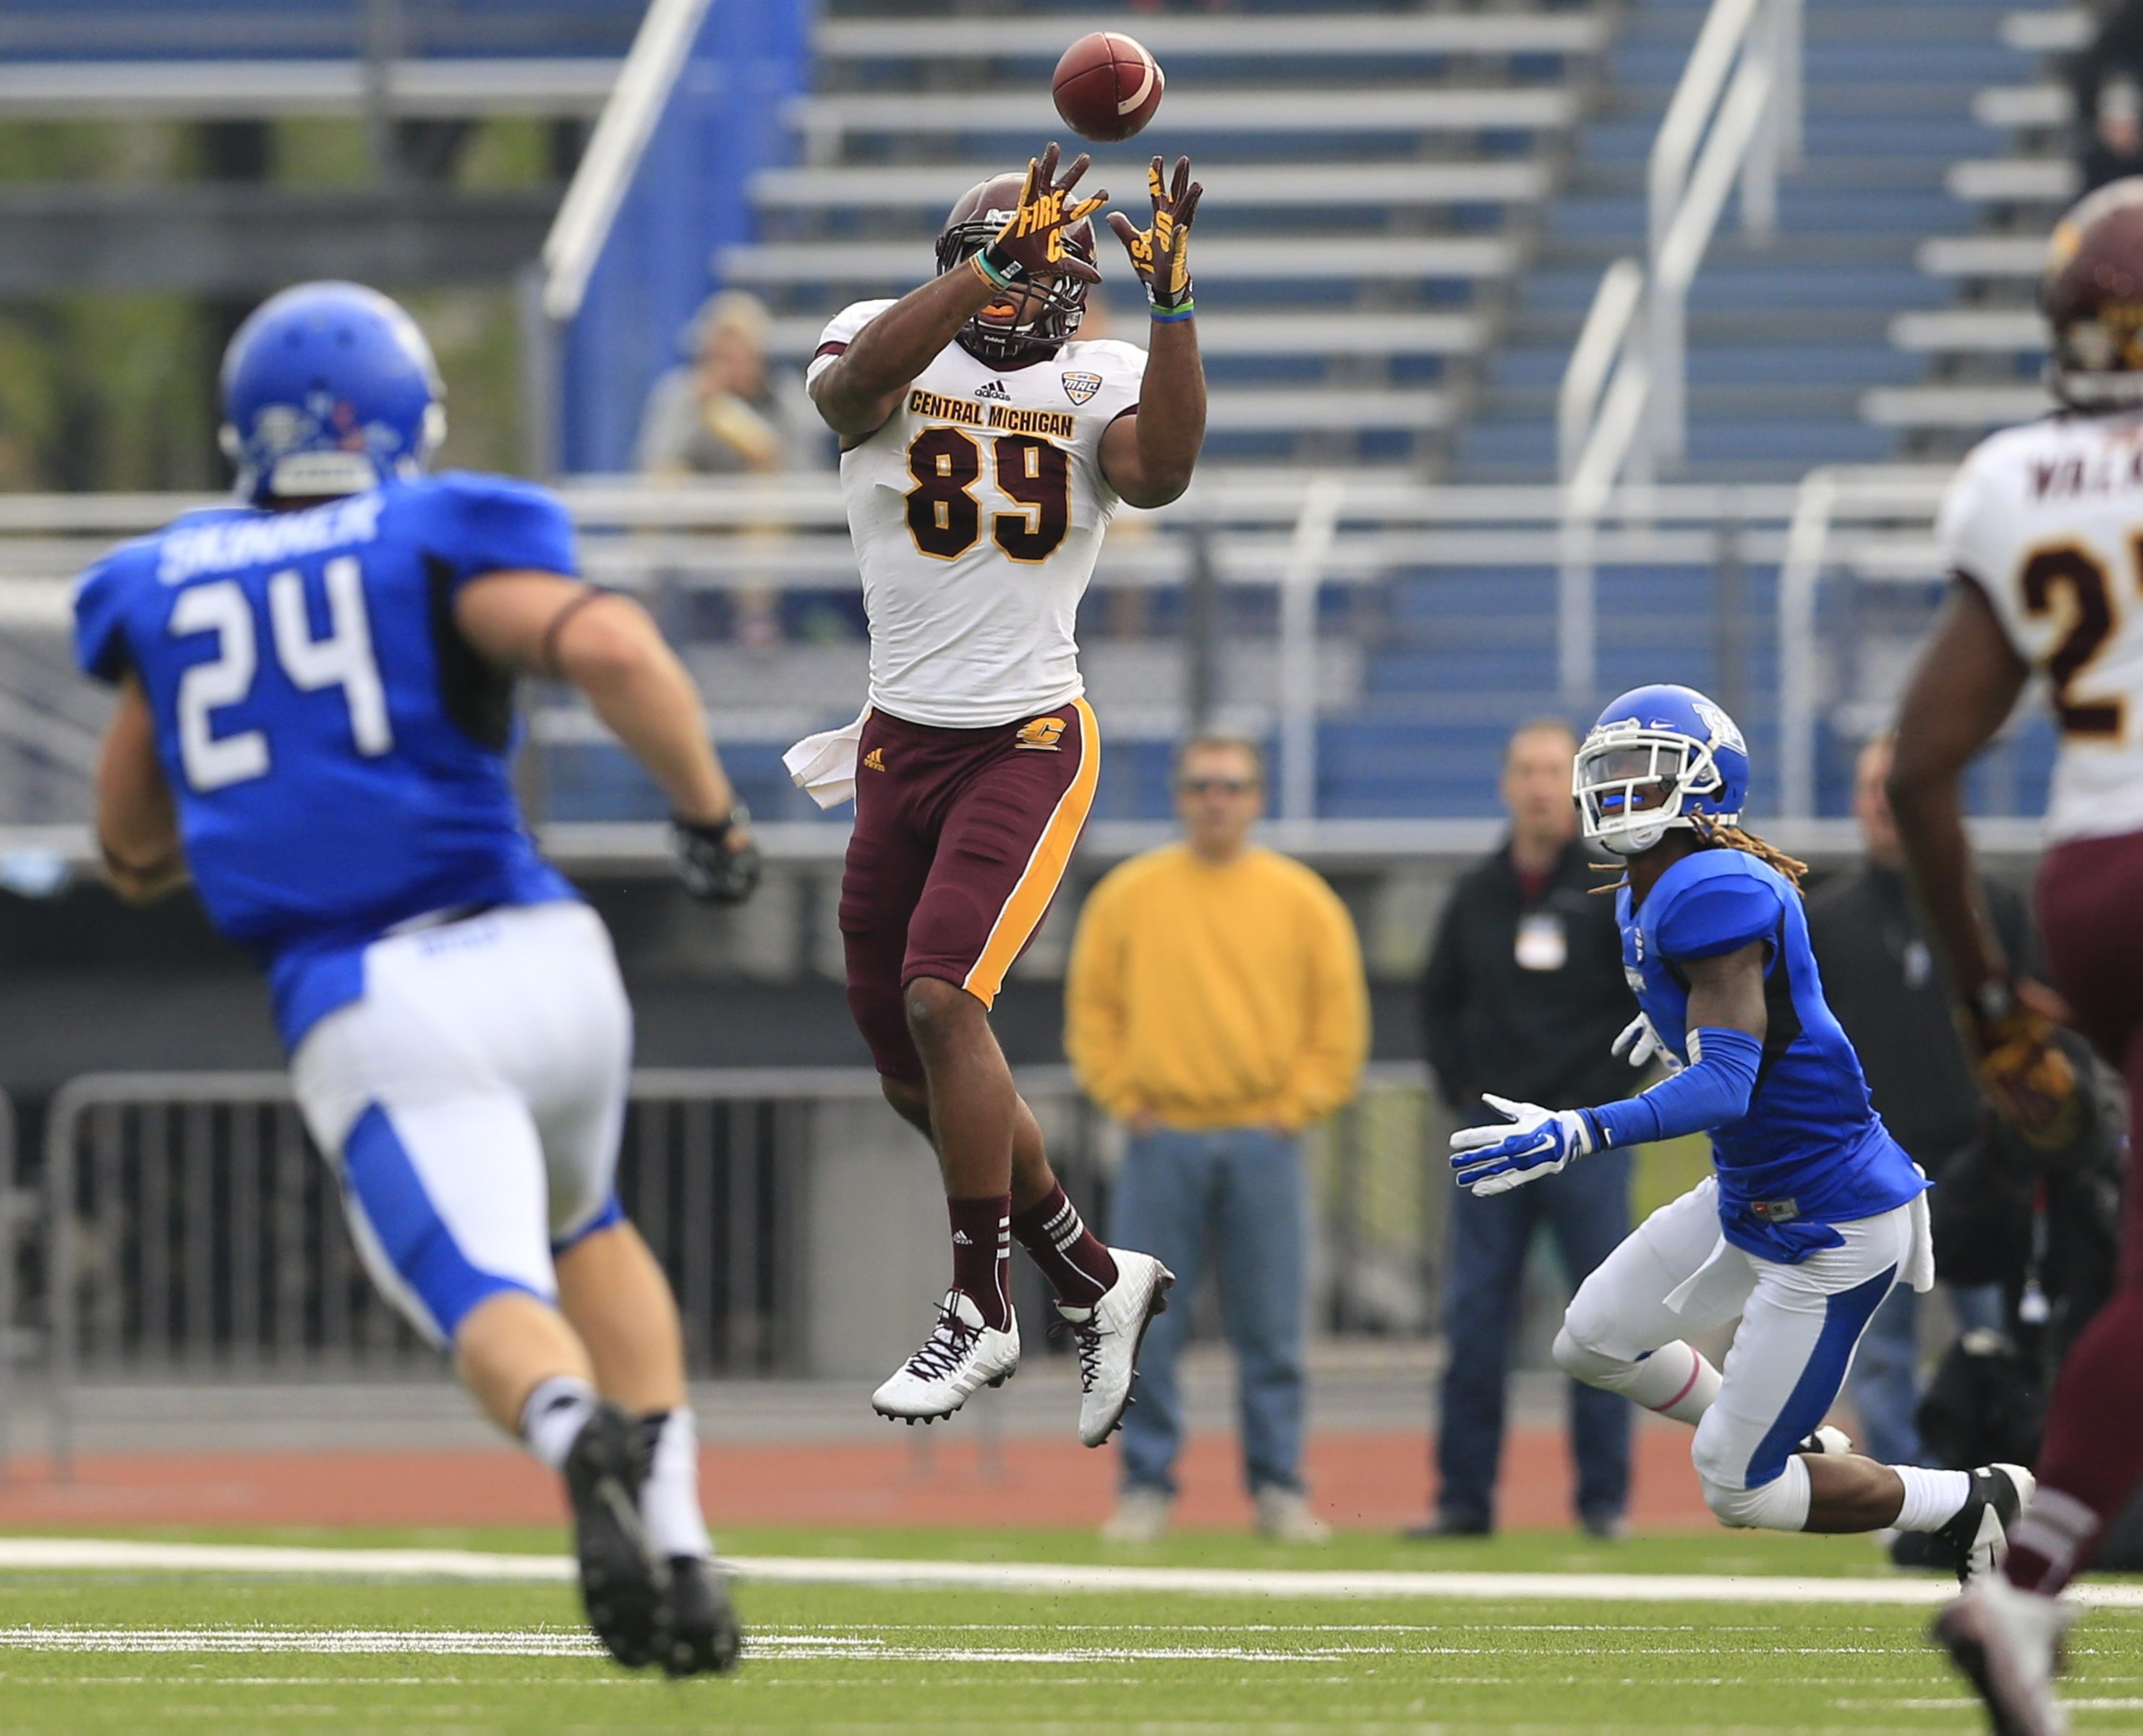 Central Michigan's Ben McCord catches a pass as UB defenders close in during first-half action at UB Stadium on Saturday.